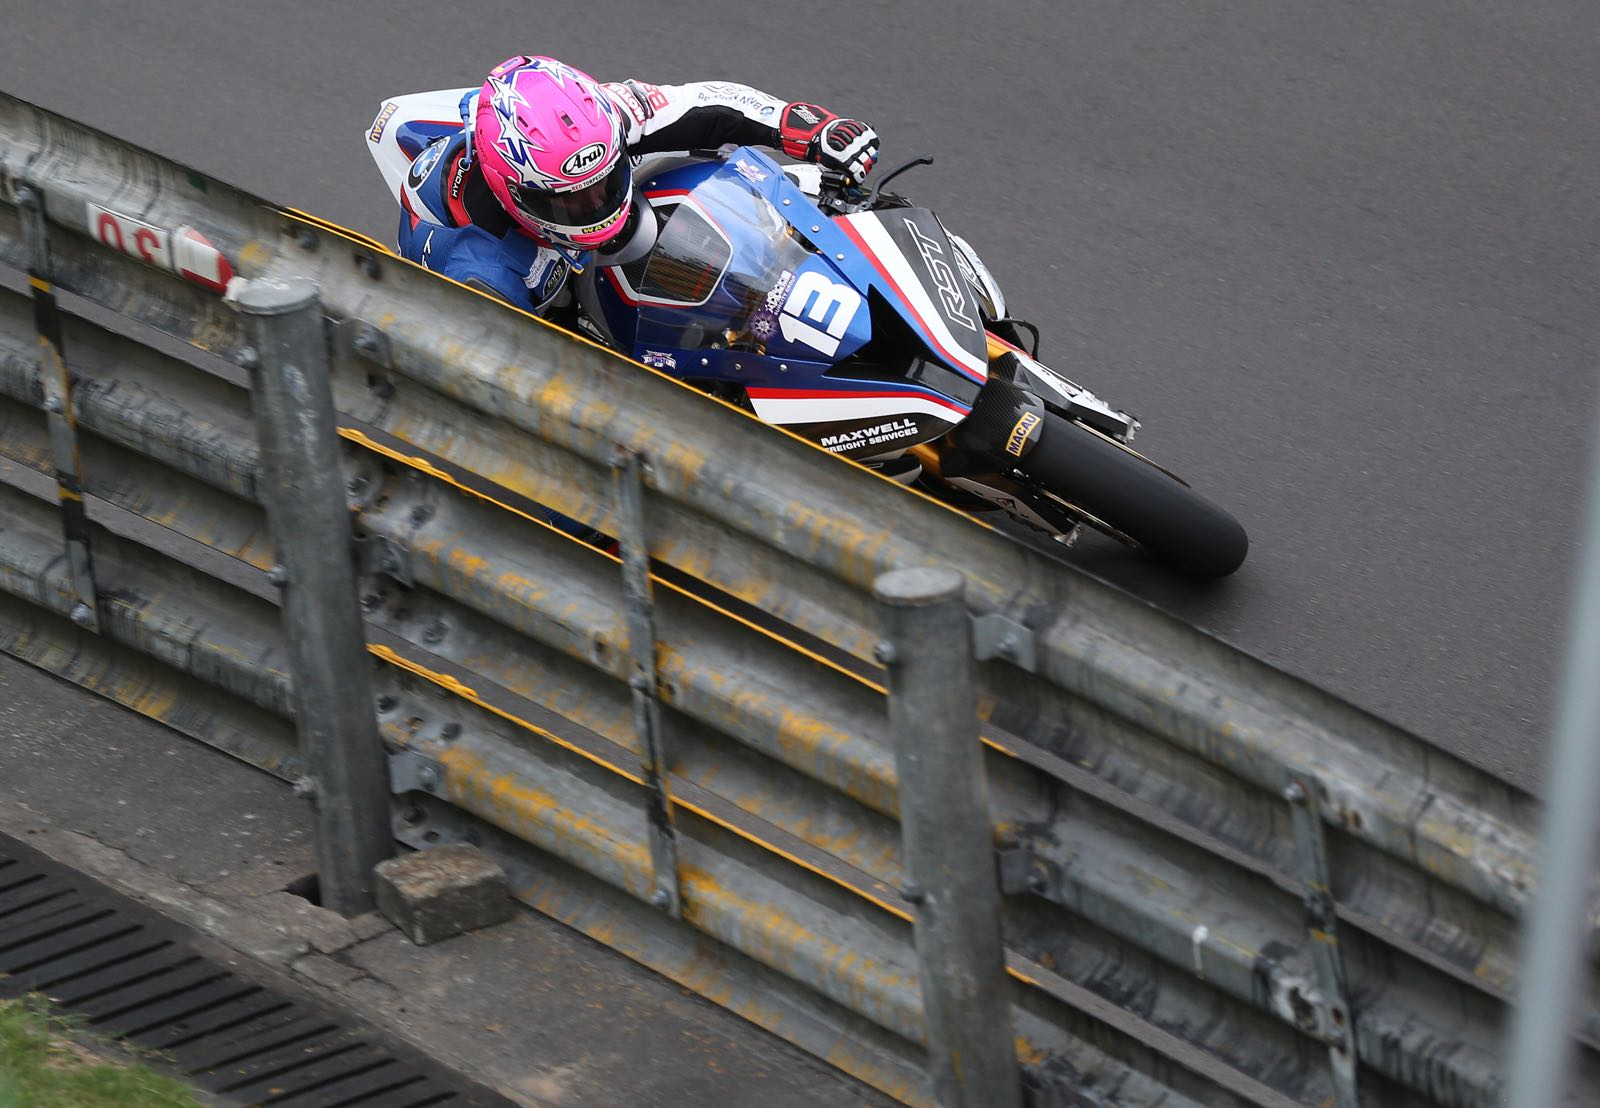 RST RACE TEAM at MACAU GRAND PRIX